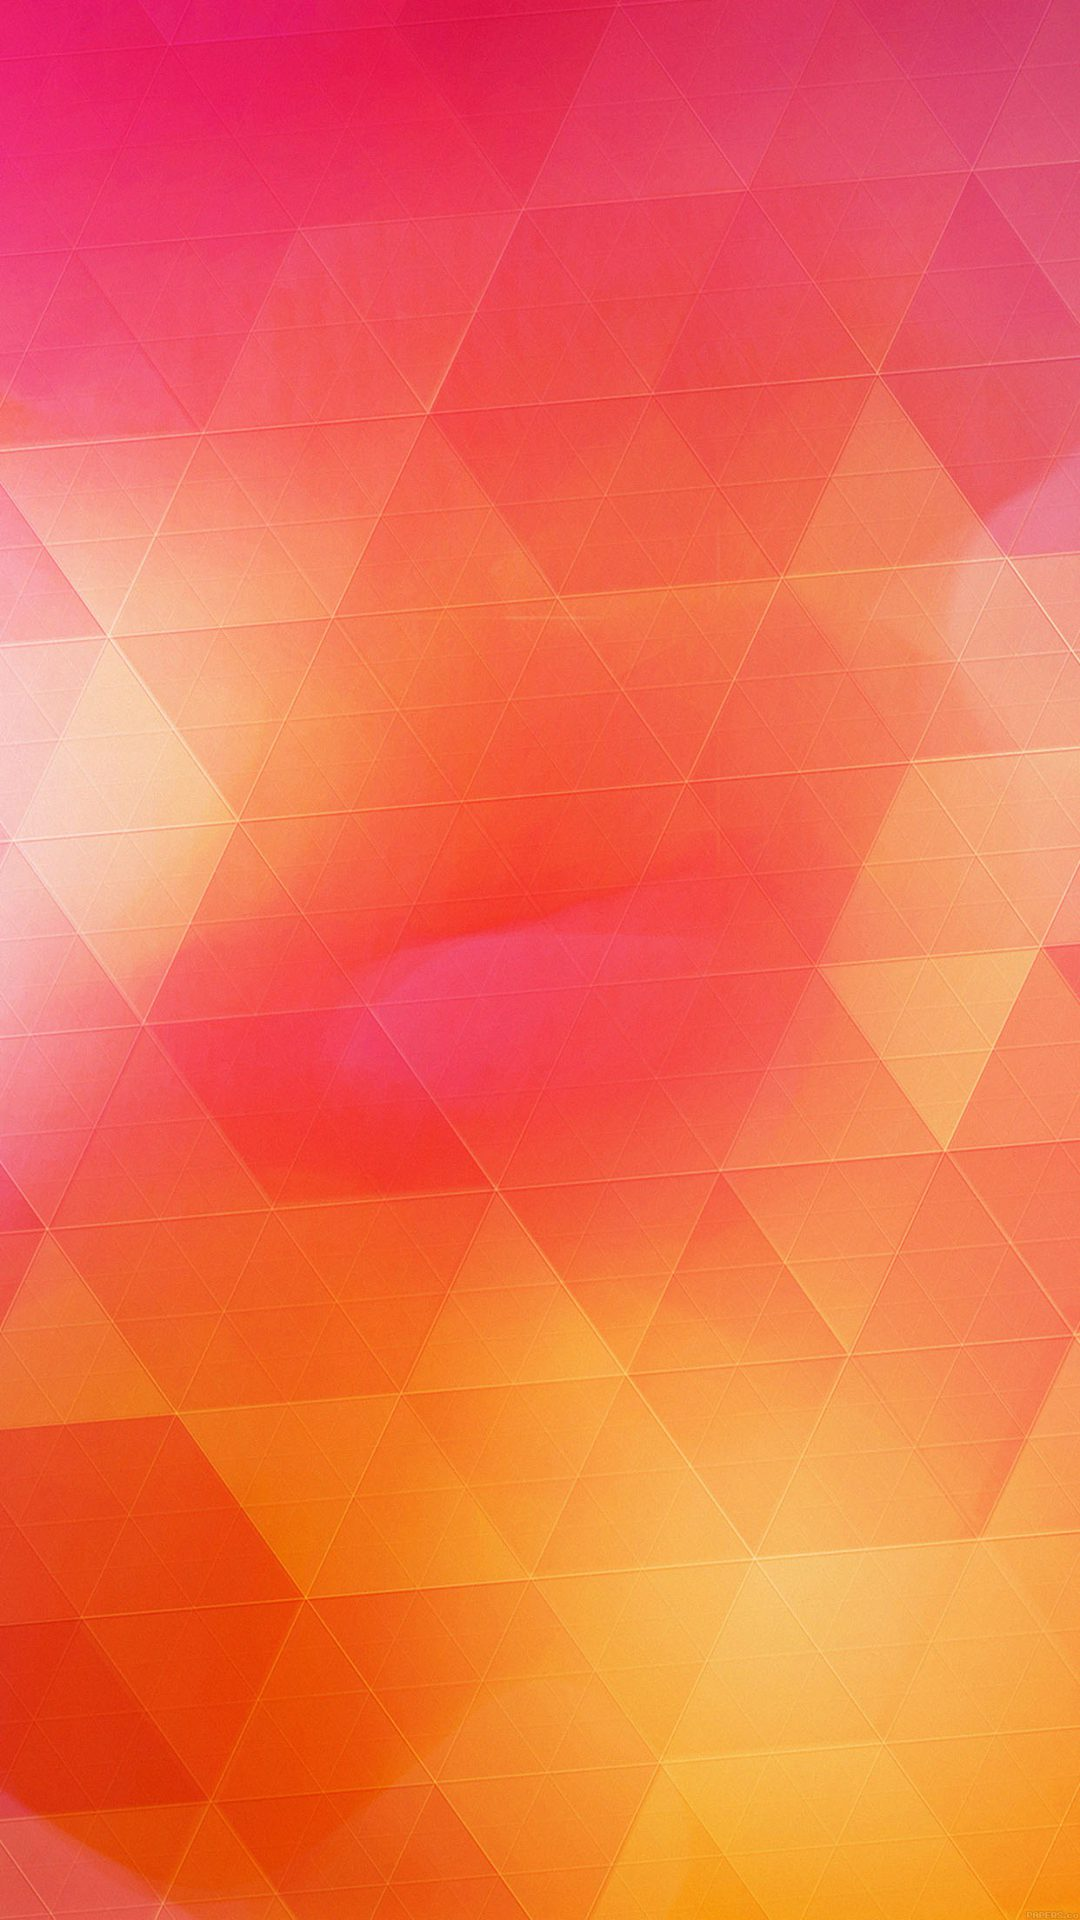 Wallpaper Android Wall Pattern